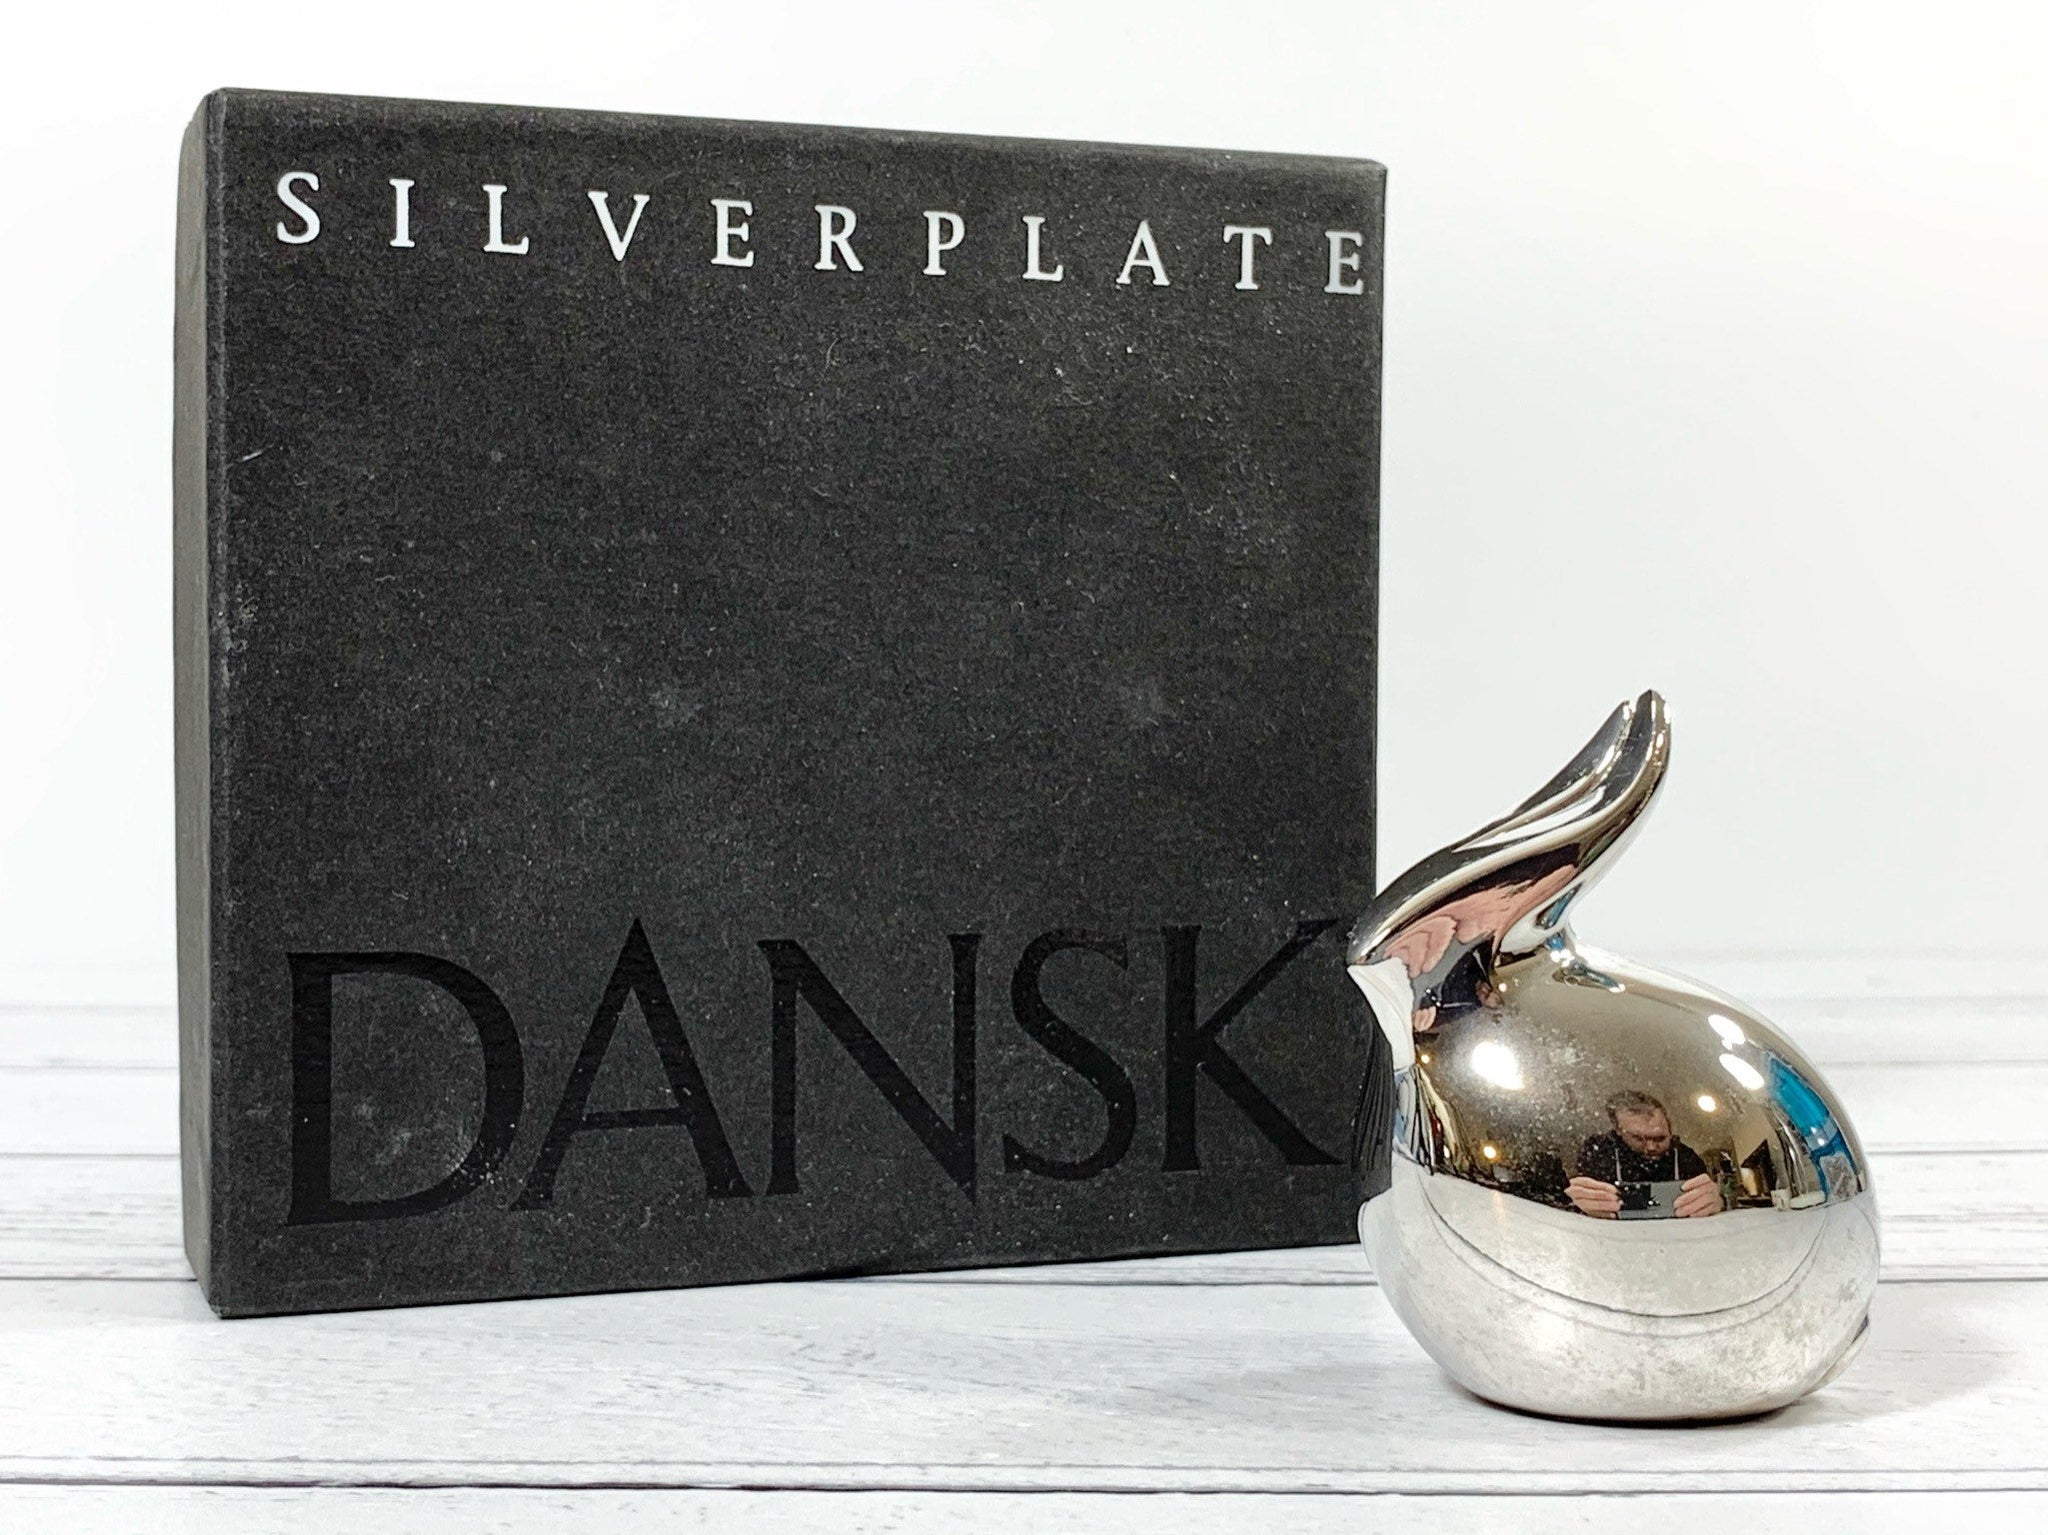 Dansk Silver Bunny Rabbit Paperweight Boxed Danish Designs Gifts Men Dads Office Work Job Presents Retro